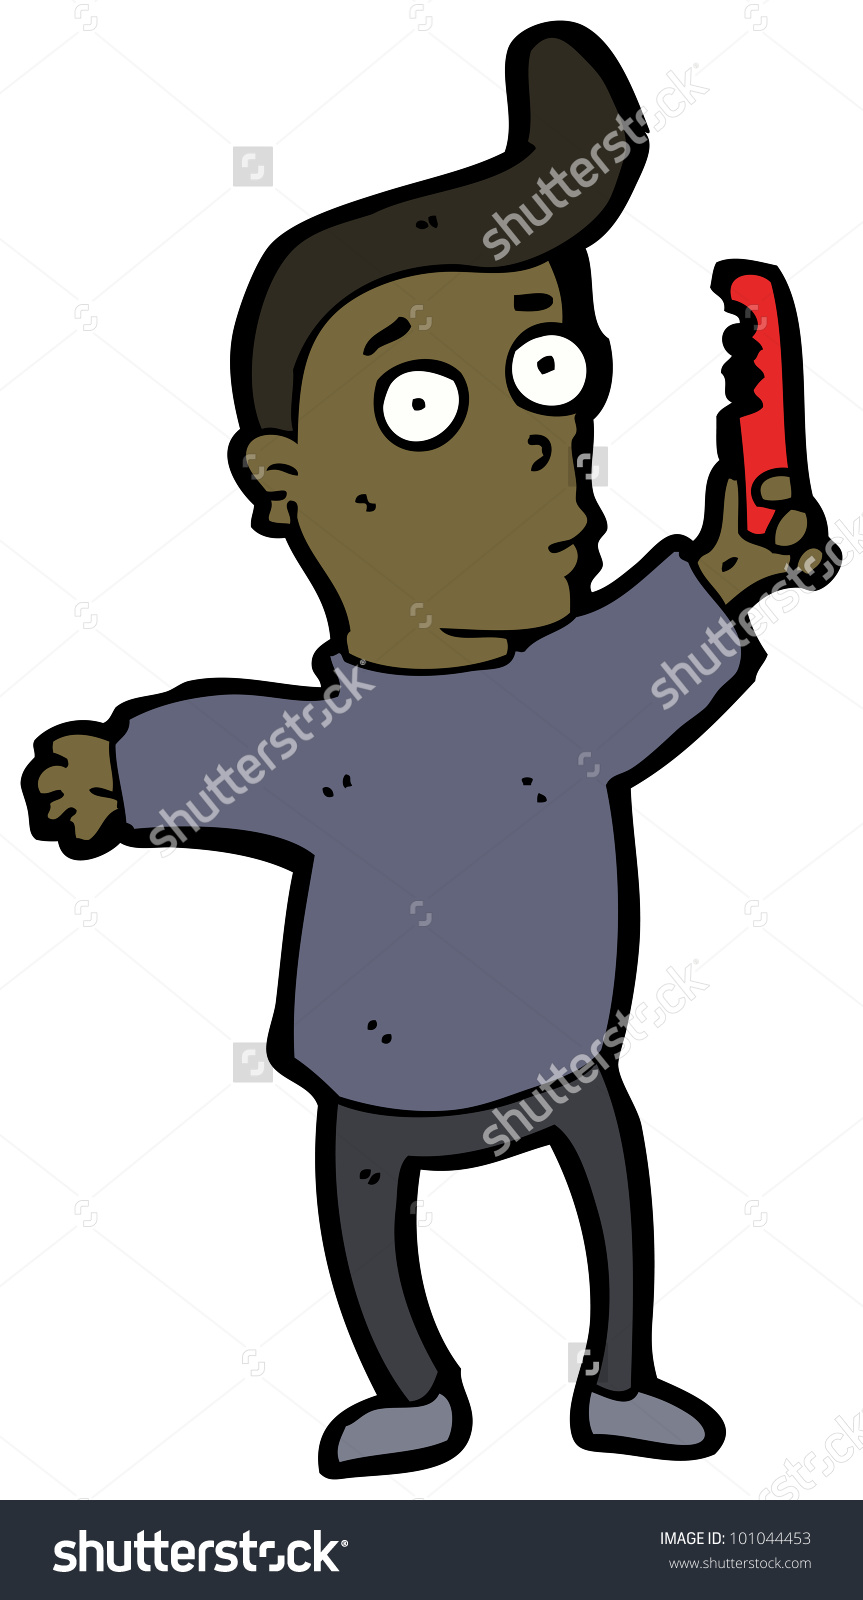 Cartoon Man Combing Hair Stock Photo 101044453 : Shutterstock.